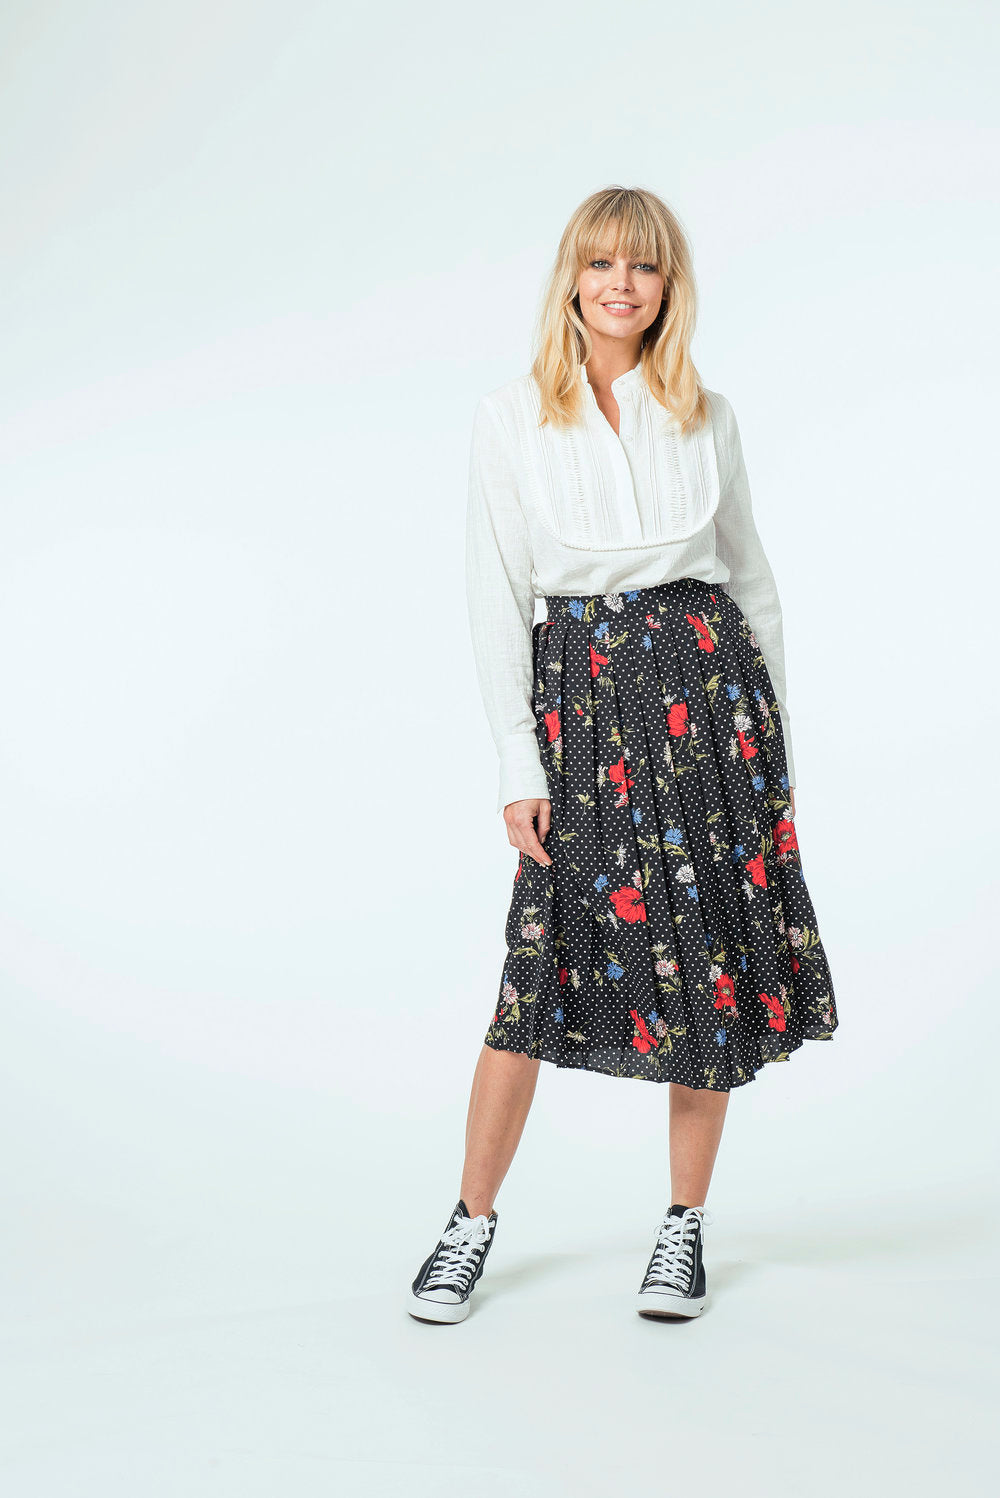 Isobel Top & Faye Skirt - White Bib & Floral Dot.jpg